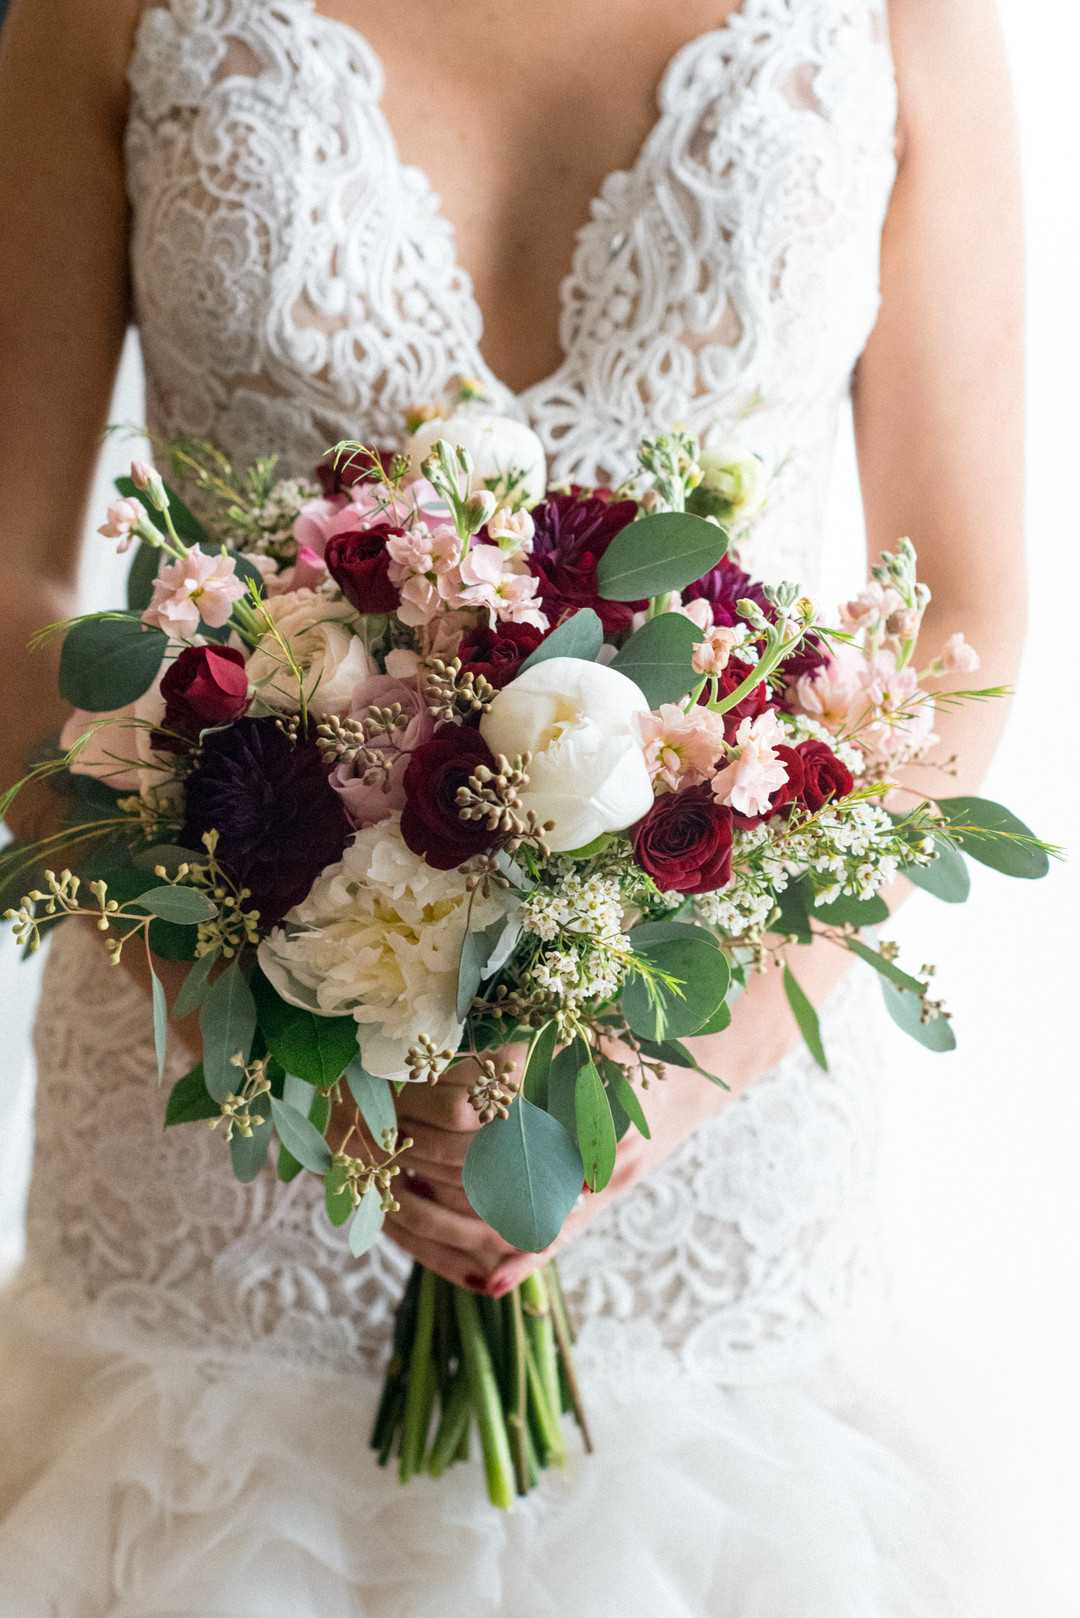 Bride's Floral Bouquet | A Stunning St. Patrick's Day Wedding | Kate Aspen